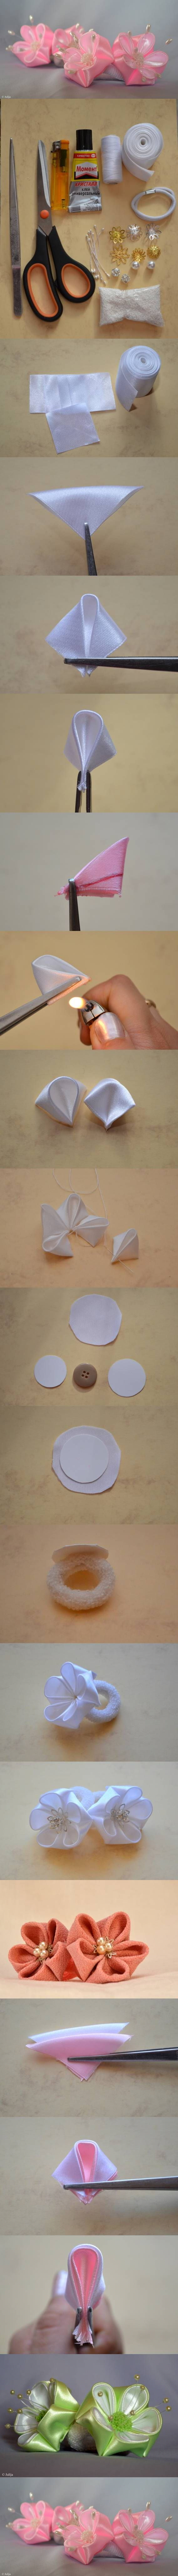 DIY Round Petals Ribbon Flower DIY Round Petals Ribbon Flower